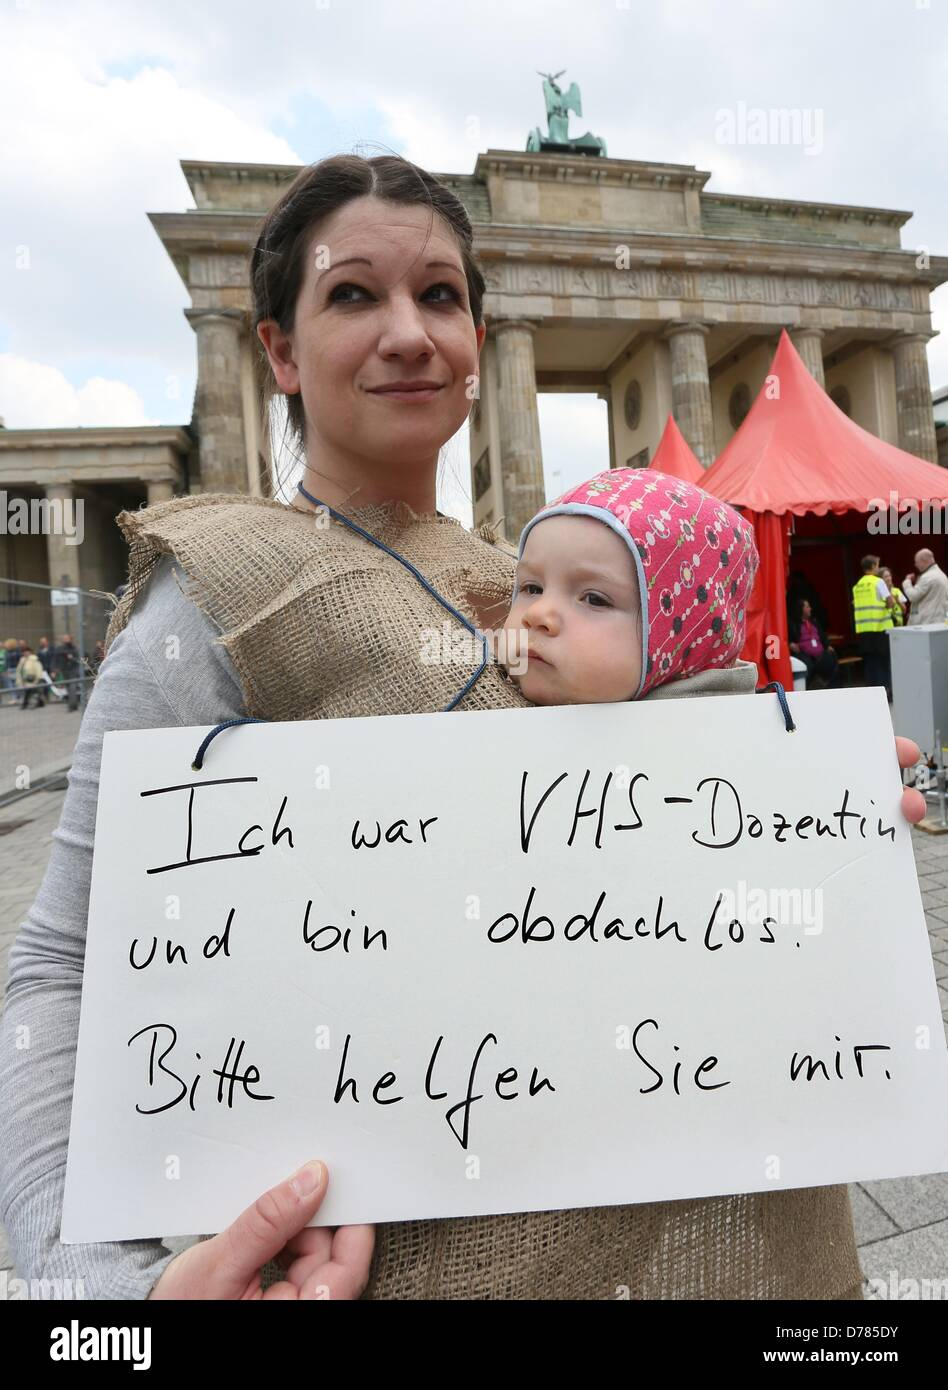 Berlin, Germany, 01 May 2013. A woman holds a sign, which reads 'Ich war VHS-Dozentin und bin obdachlos' - Stock Image